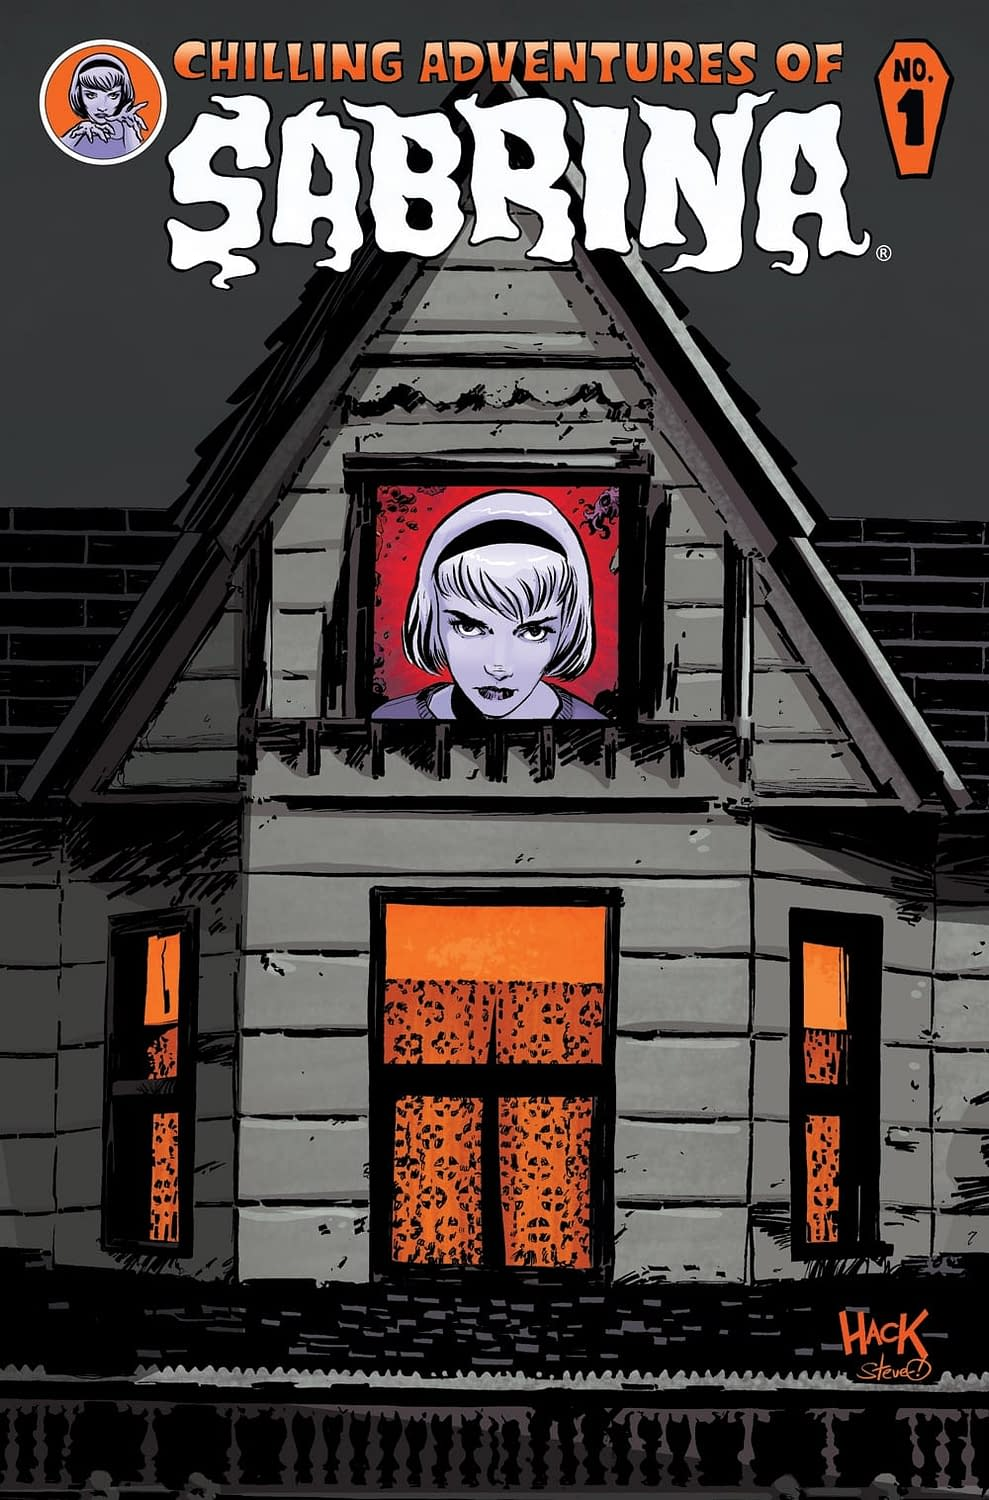 'The Chilling Adventures Of Sabrina' TV Series Coming To The CW